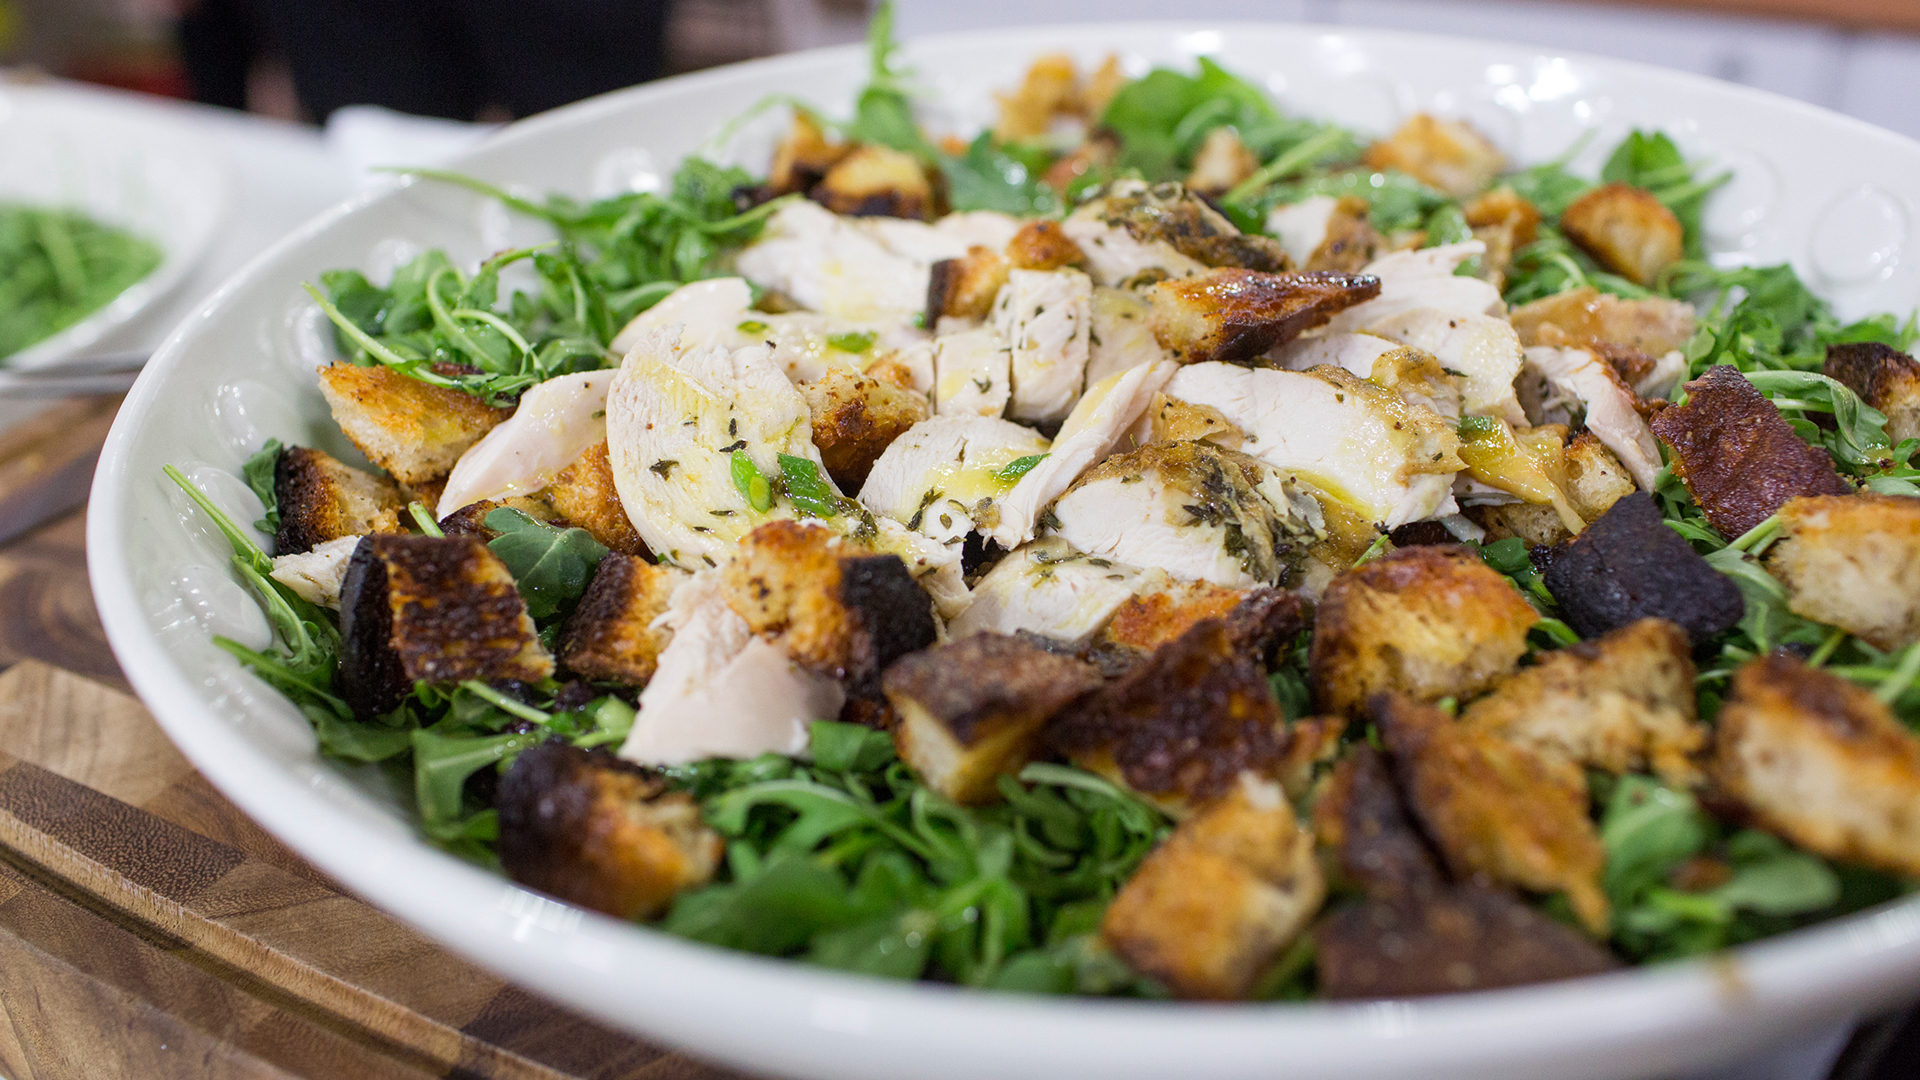 Ina Garten Chicken Recipes Roast Chicken Over Bread And Arugula Salad  Today